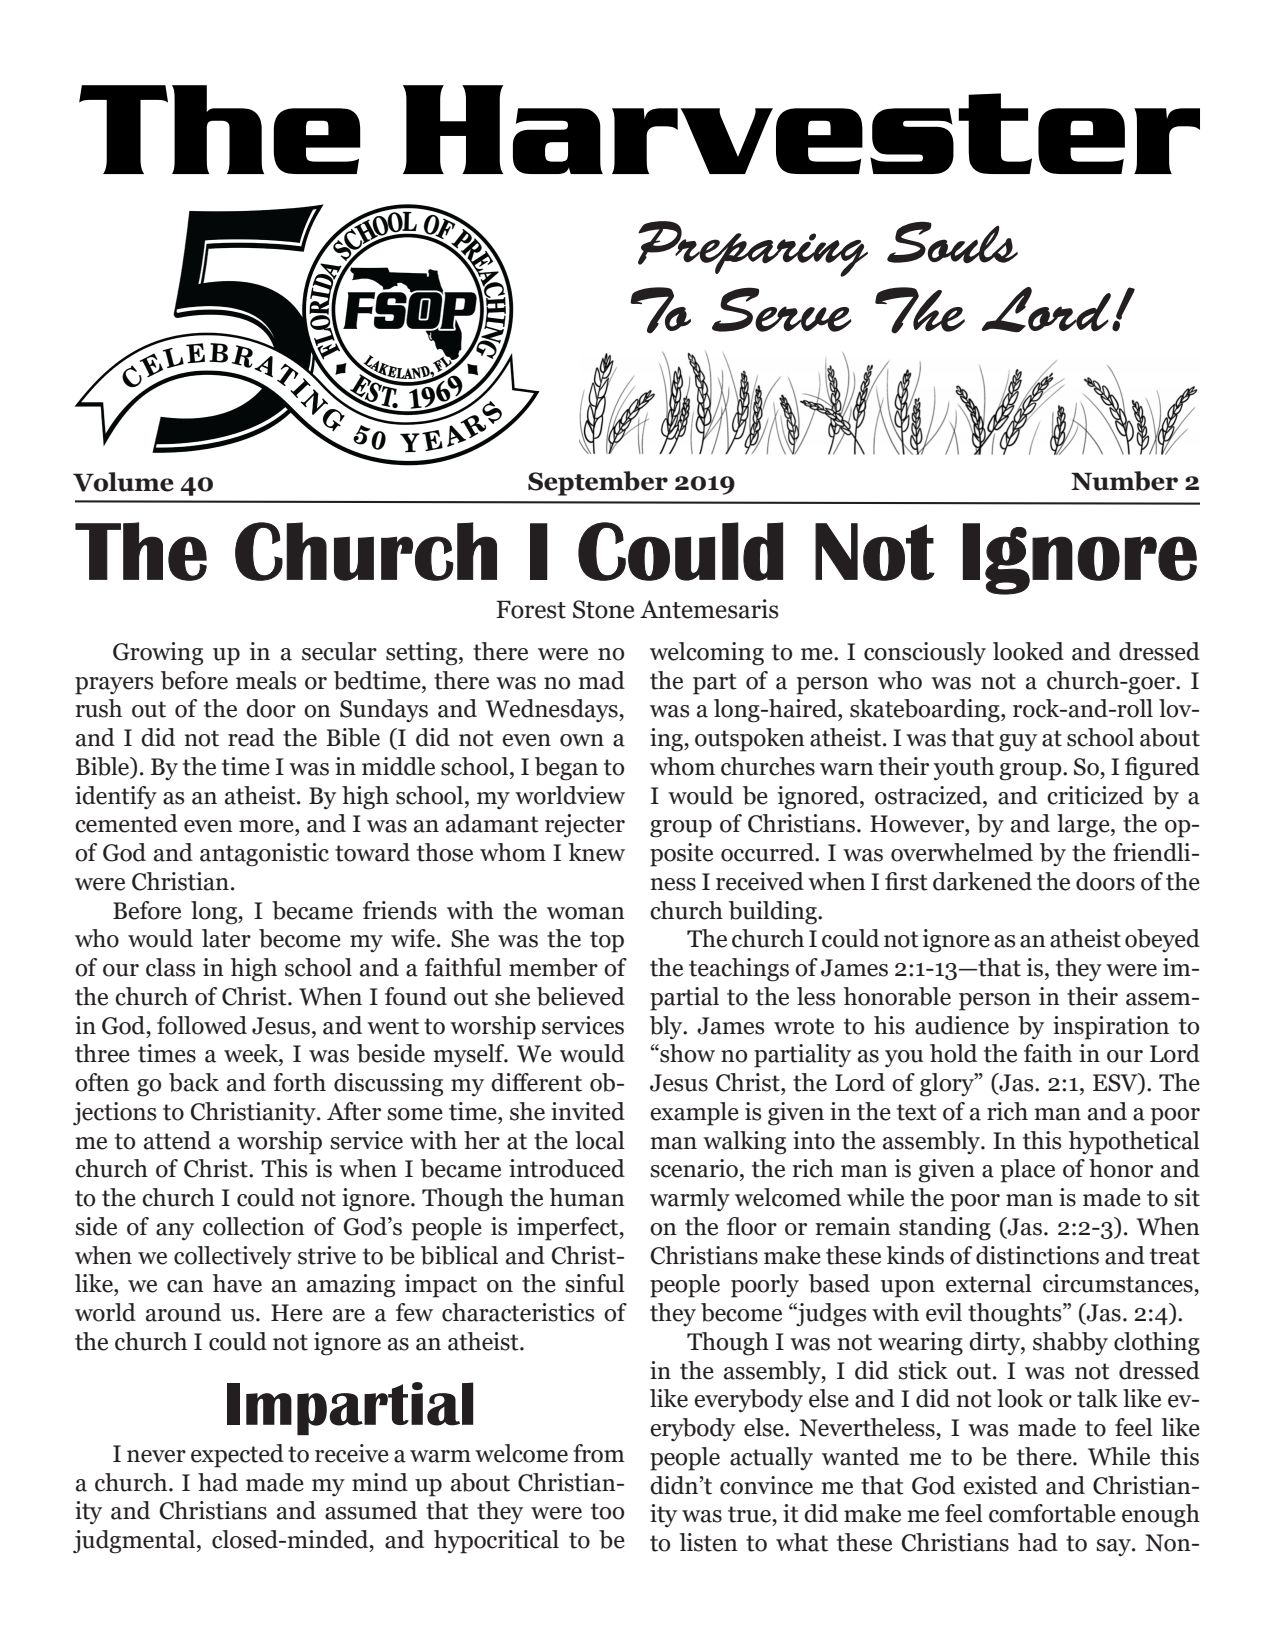 """Featured image for """"Harvester September 2019: The Church I Could Not Ignore"""""""